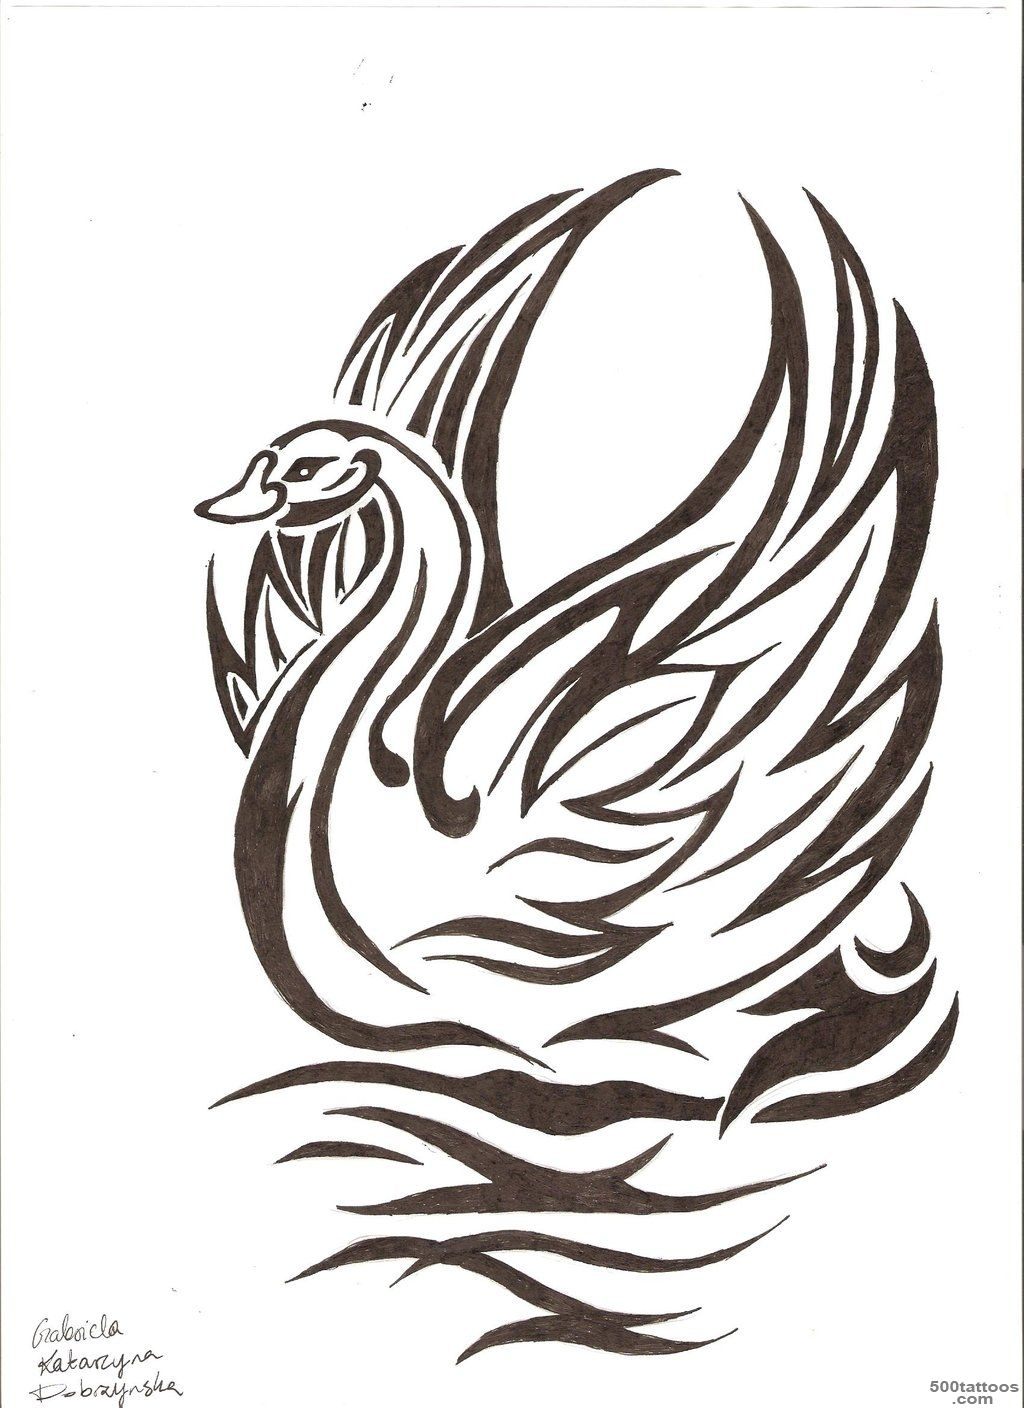 Top White Swan Tattoo Images for Pinterest Tattoos_25